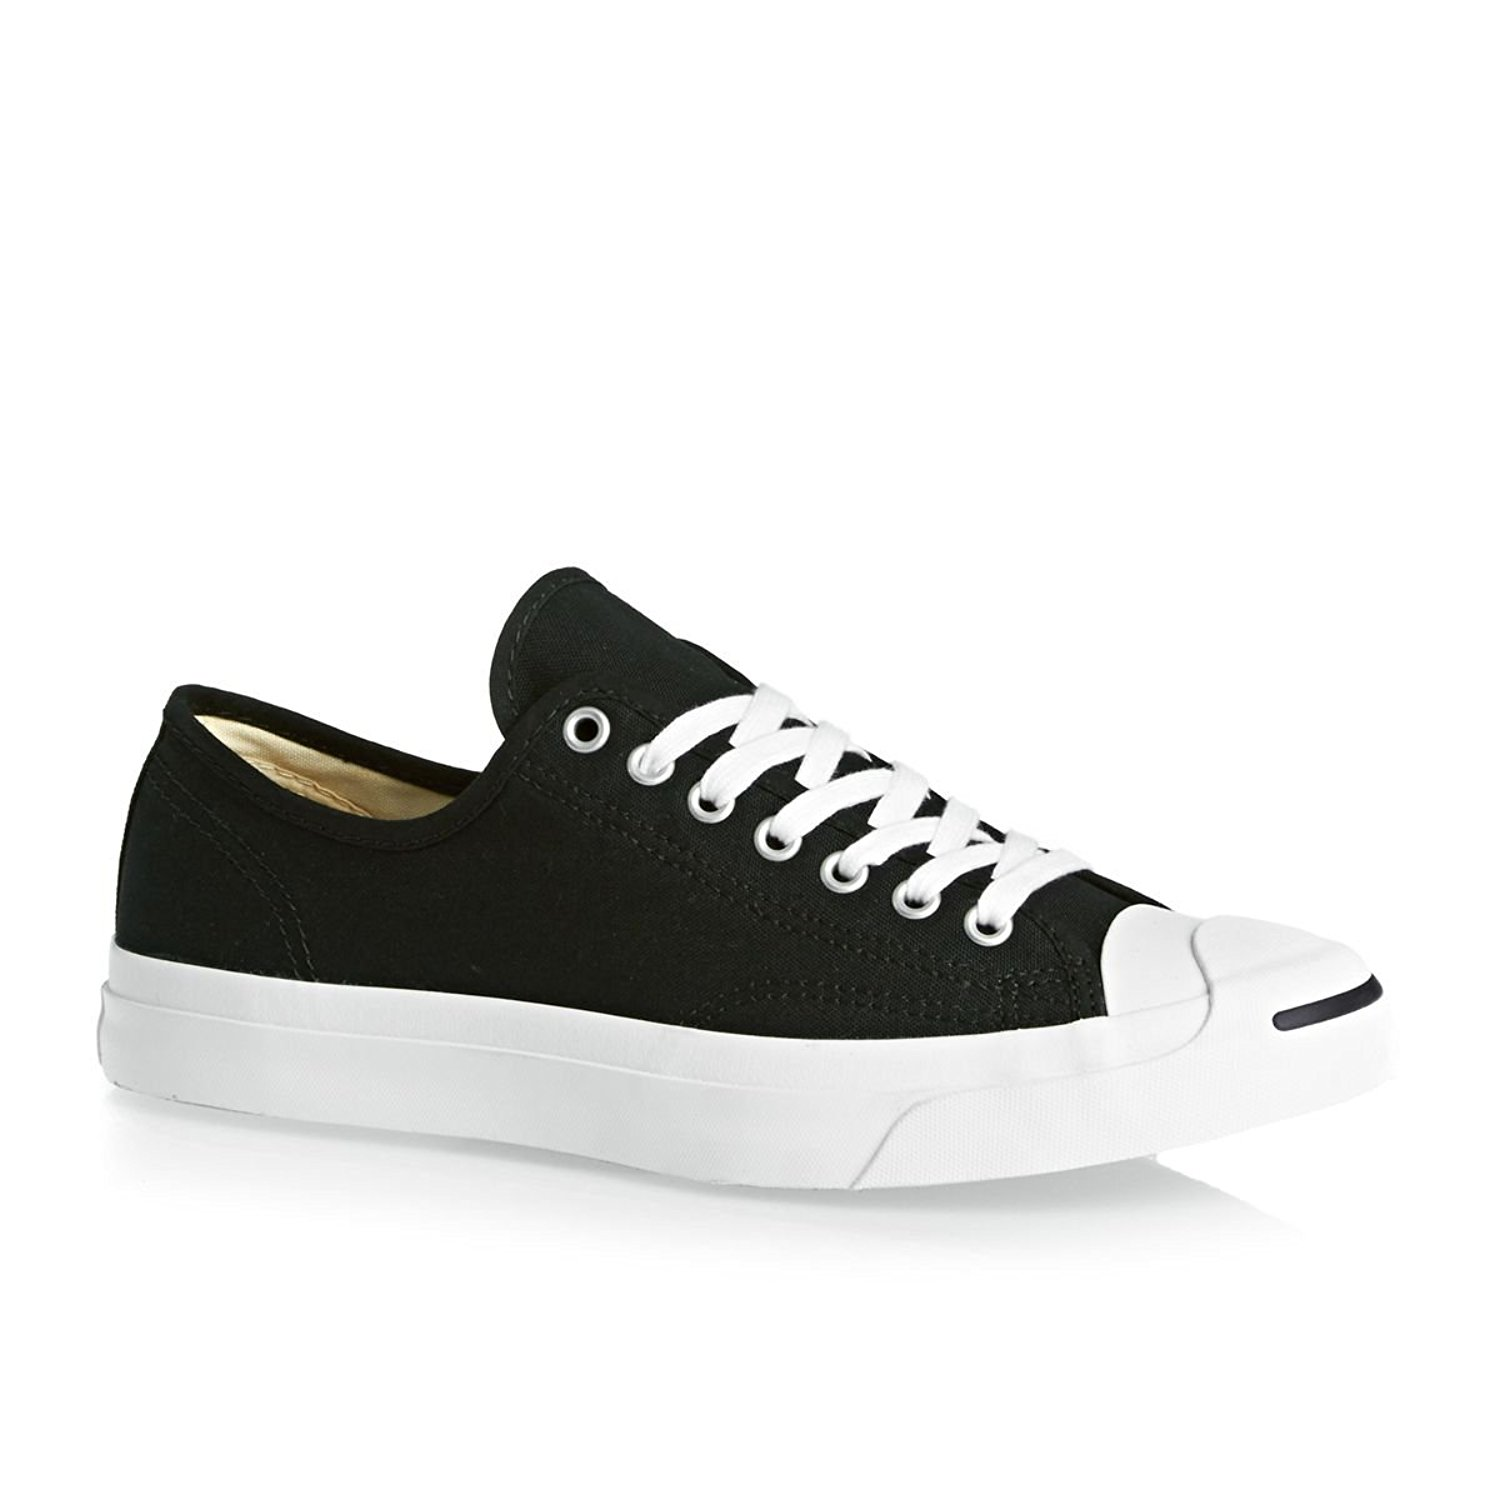 Cheap Jack Purcell Converse, find Jack Purcell Converse deals on